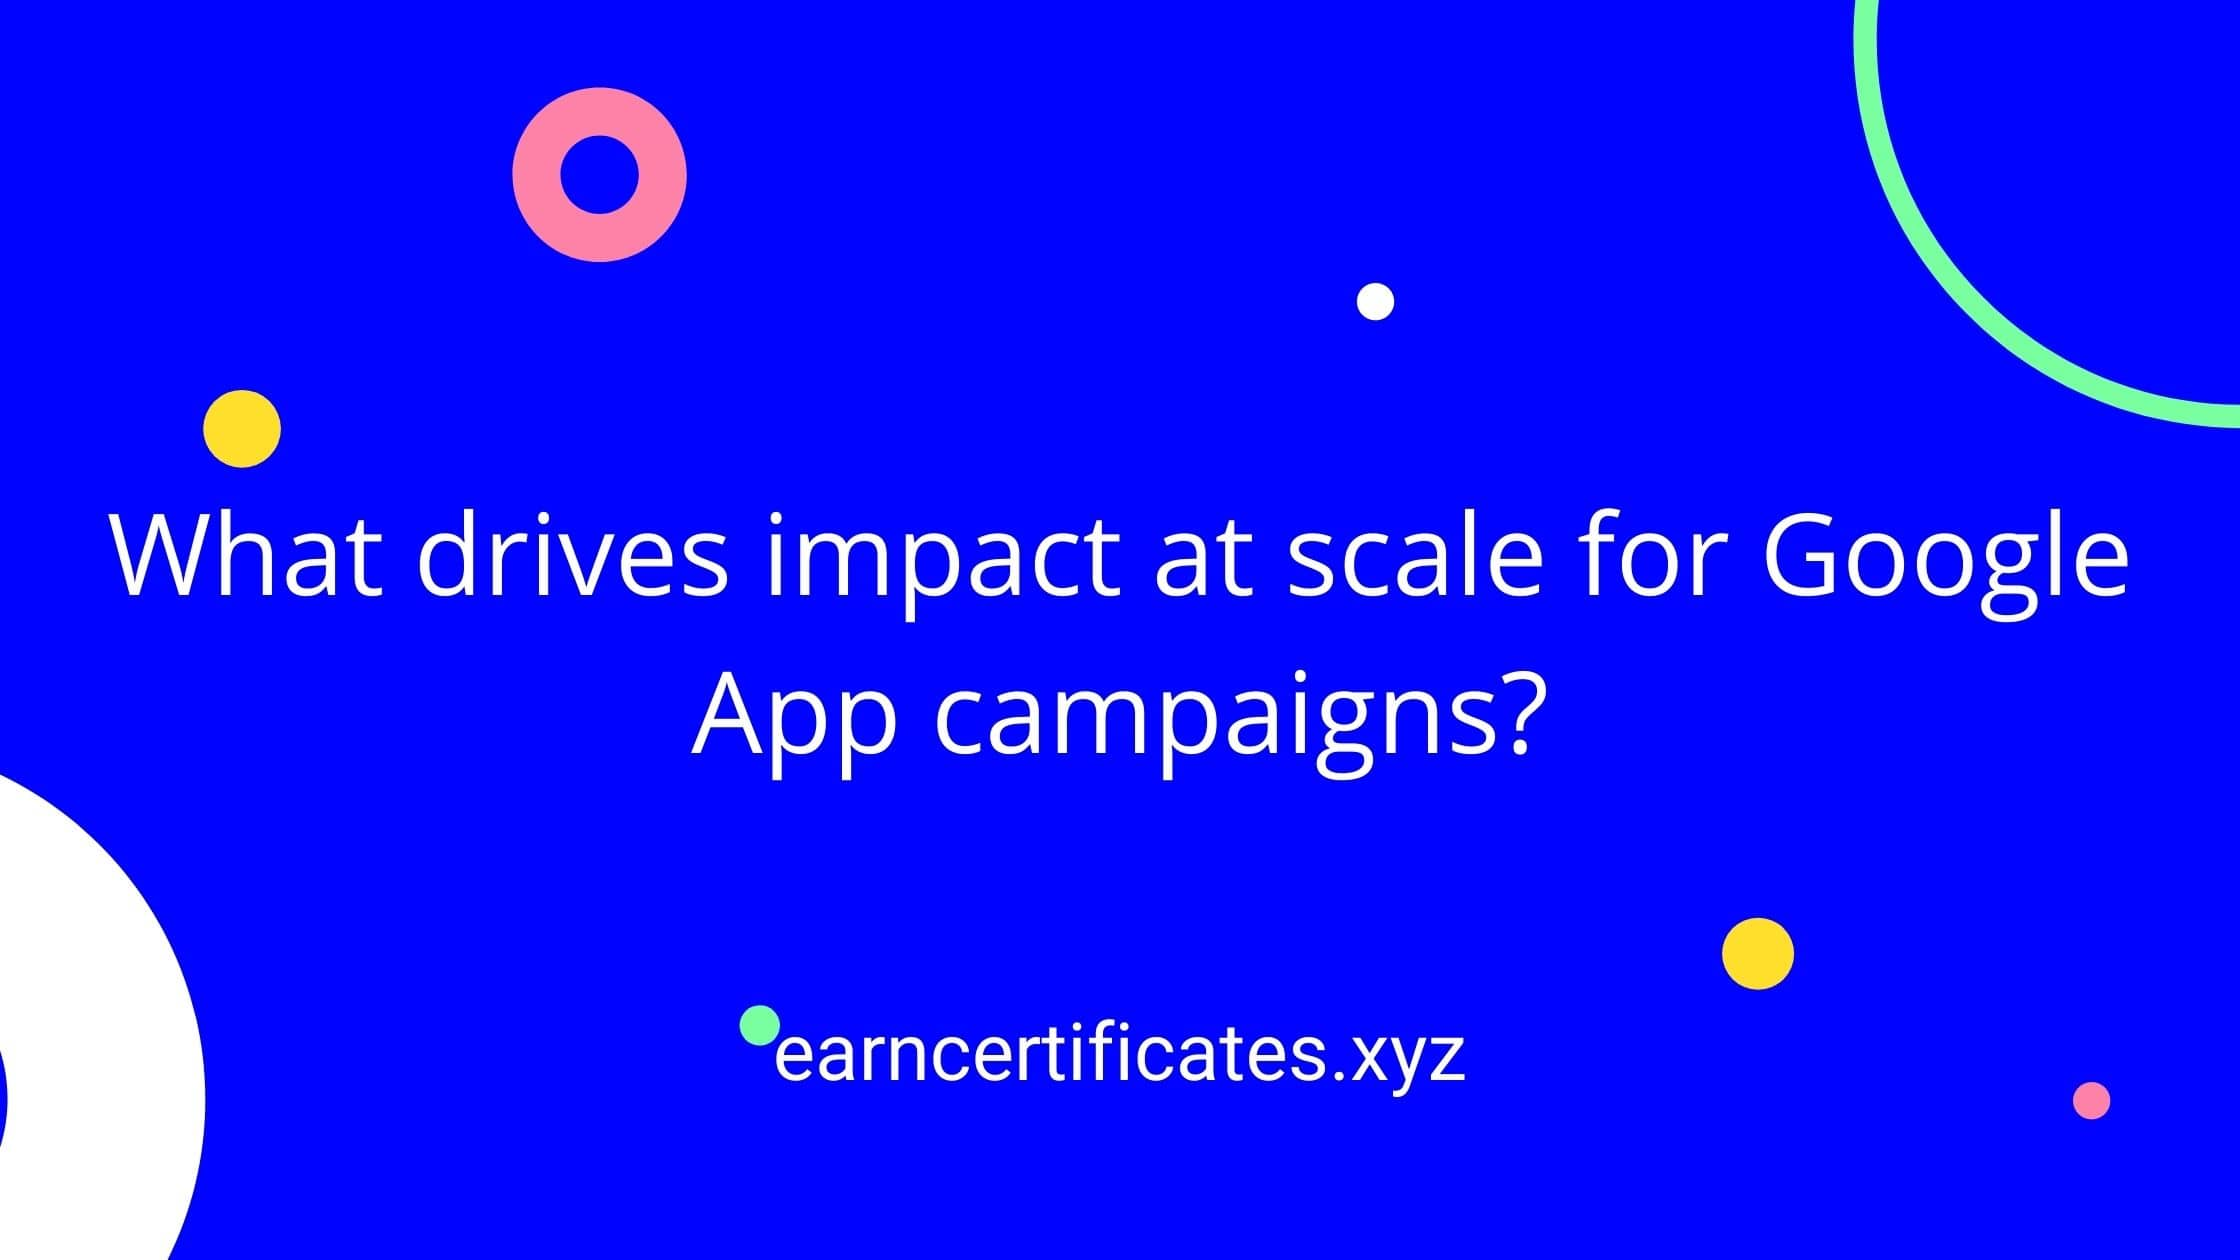 What drives impact at scale for Google App campaigns?